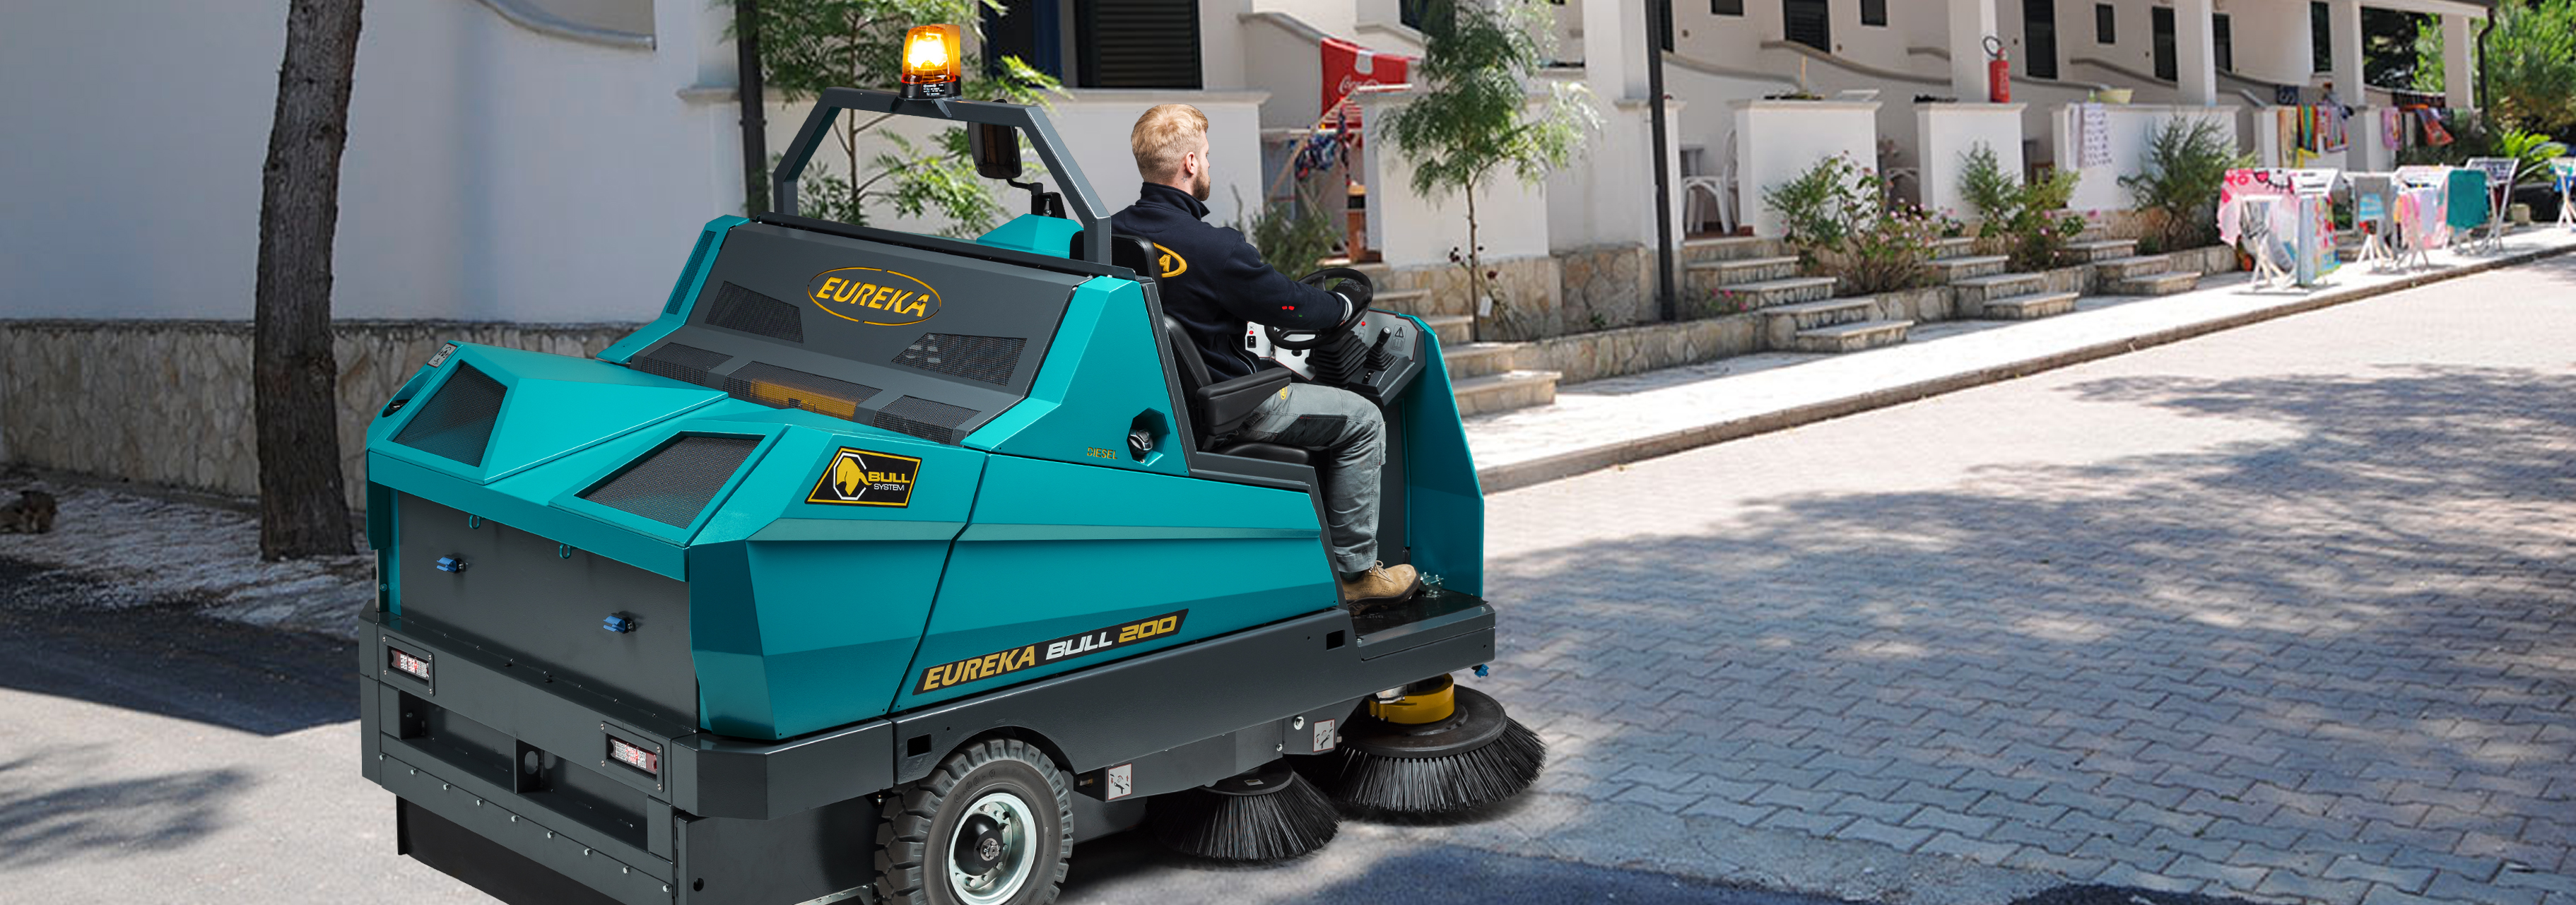 which sweeper is most suitable to maintain a camp site or holiday village?